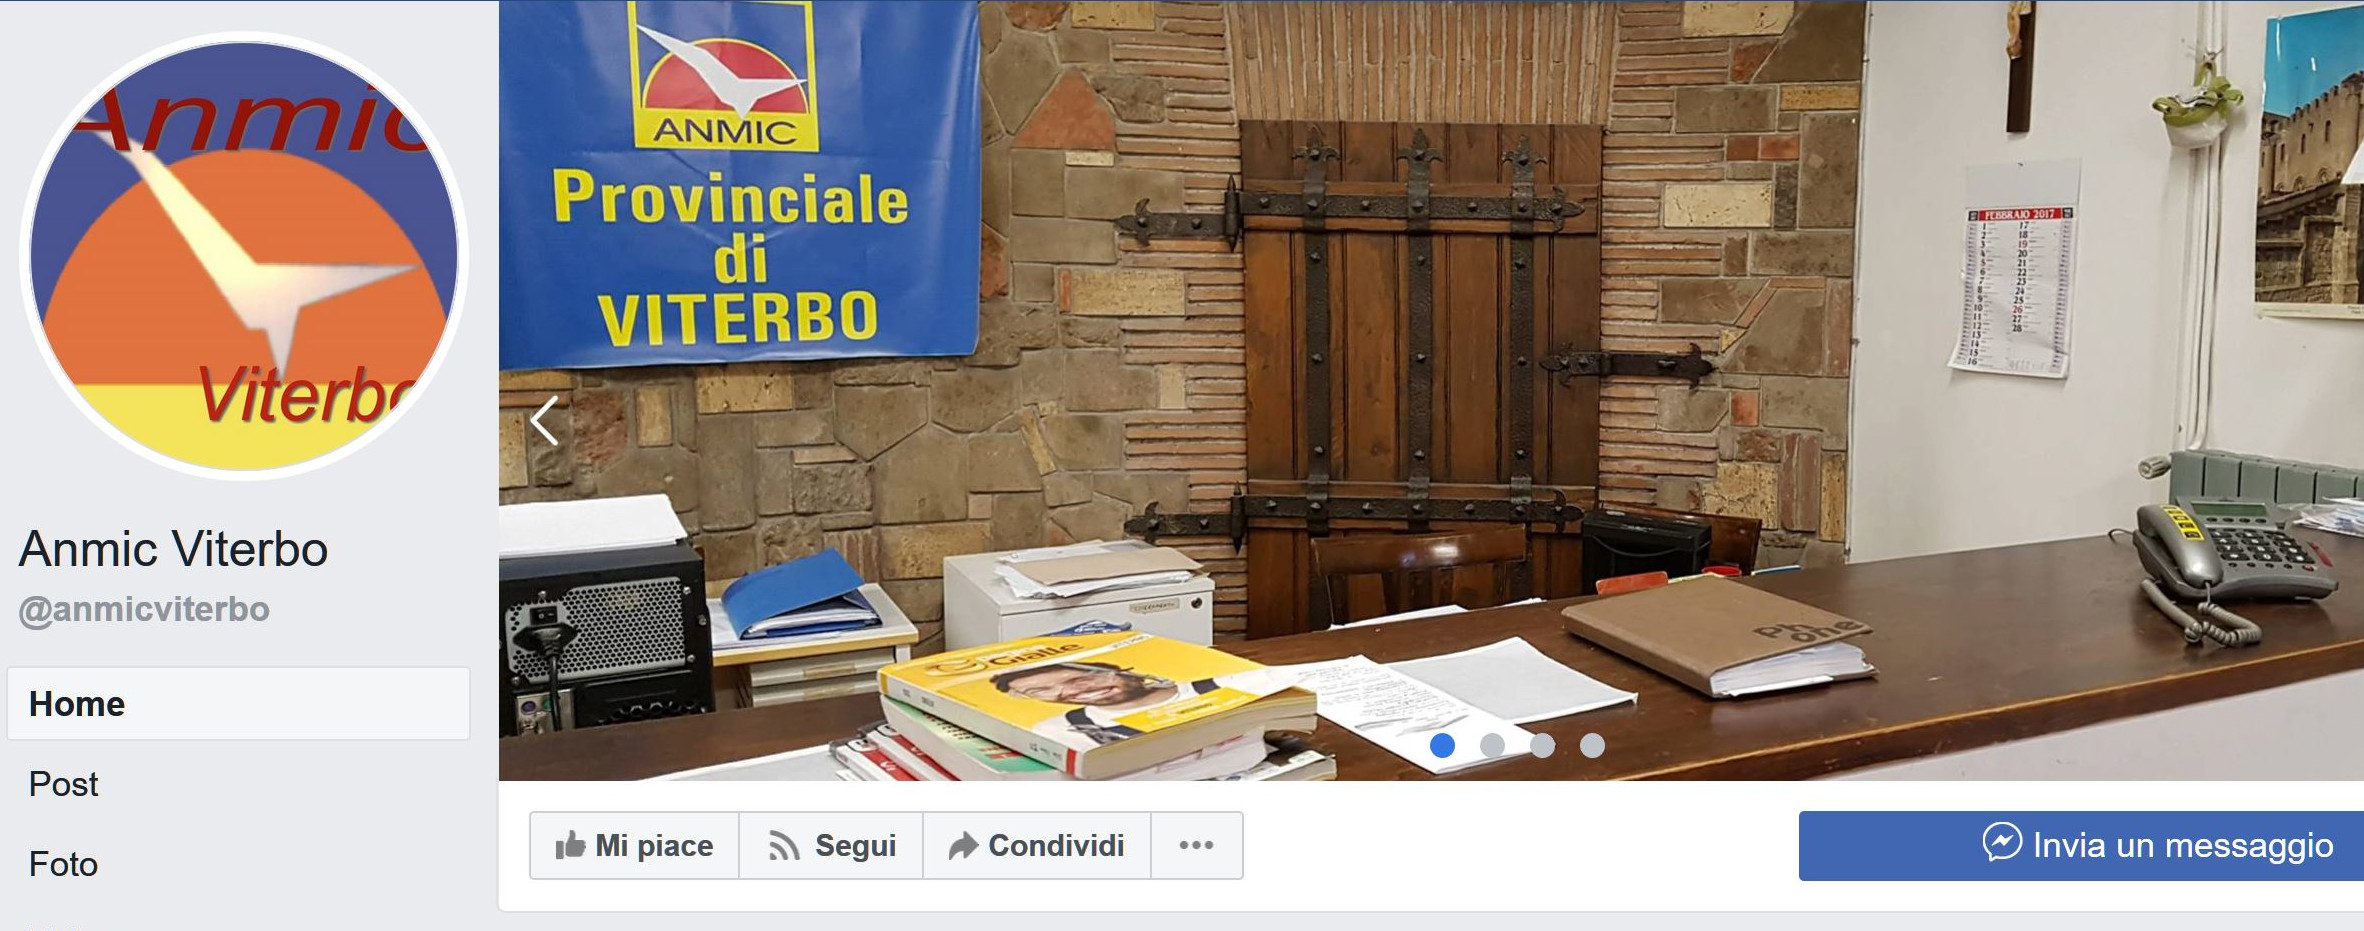 L'Anmic Viterbo su Facebook